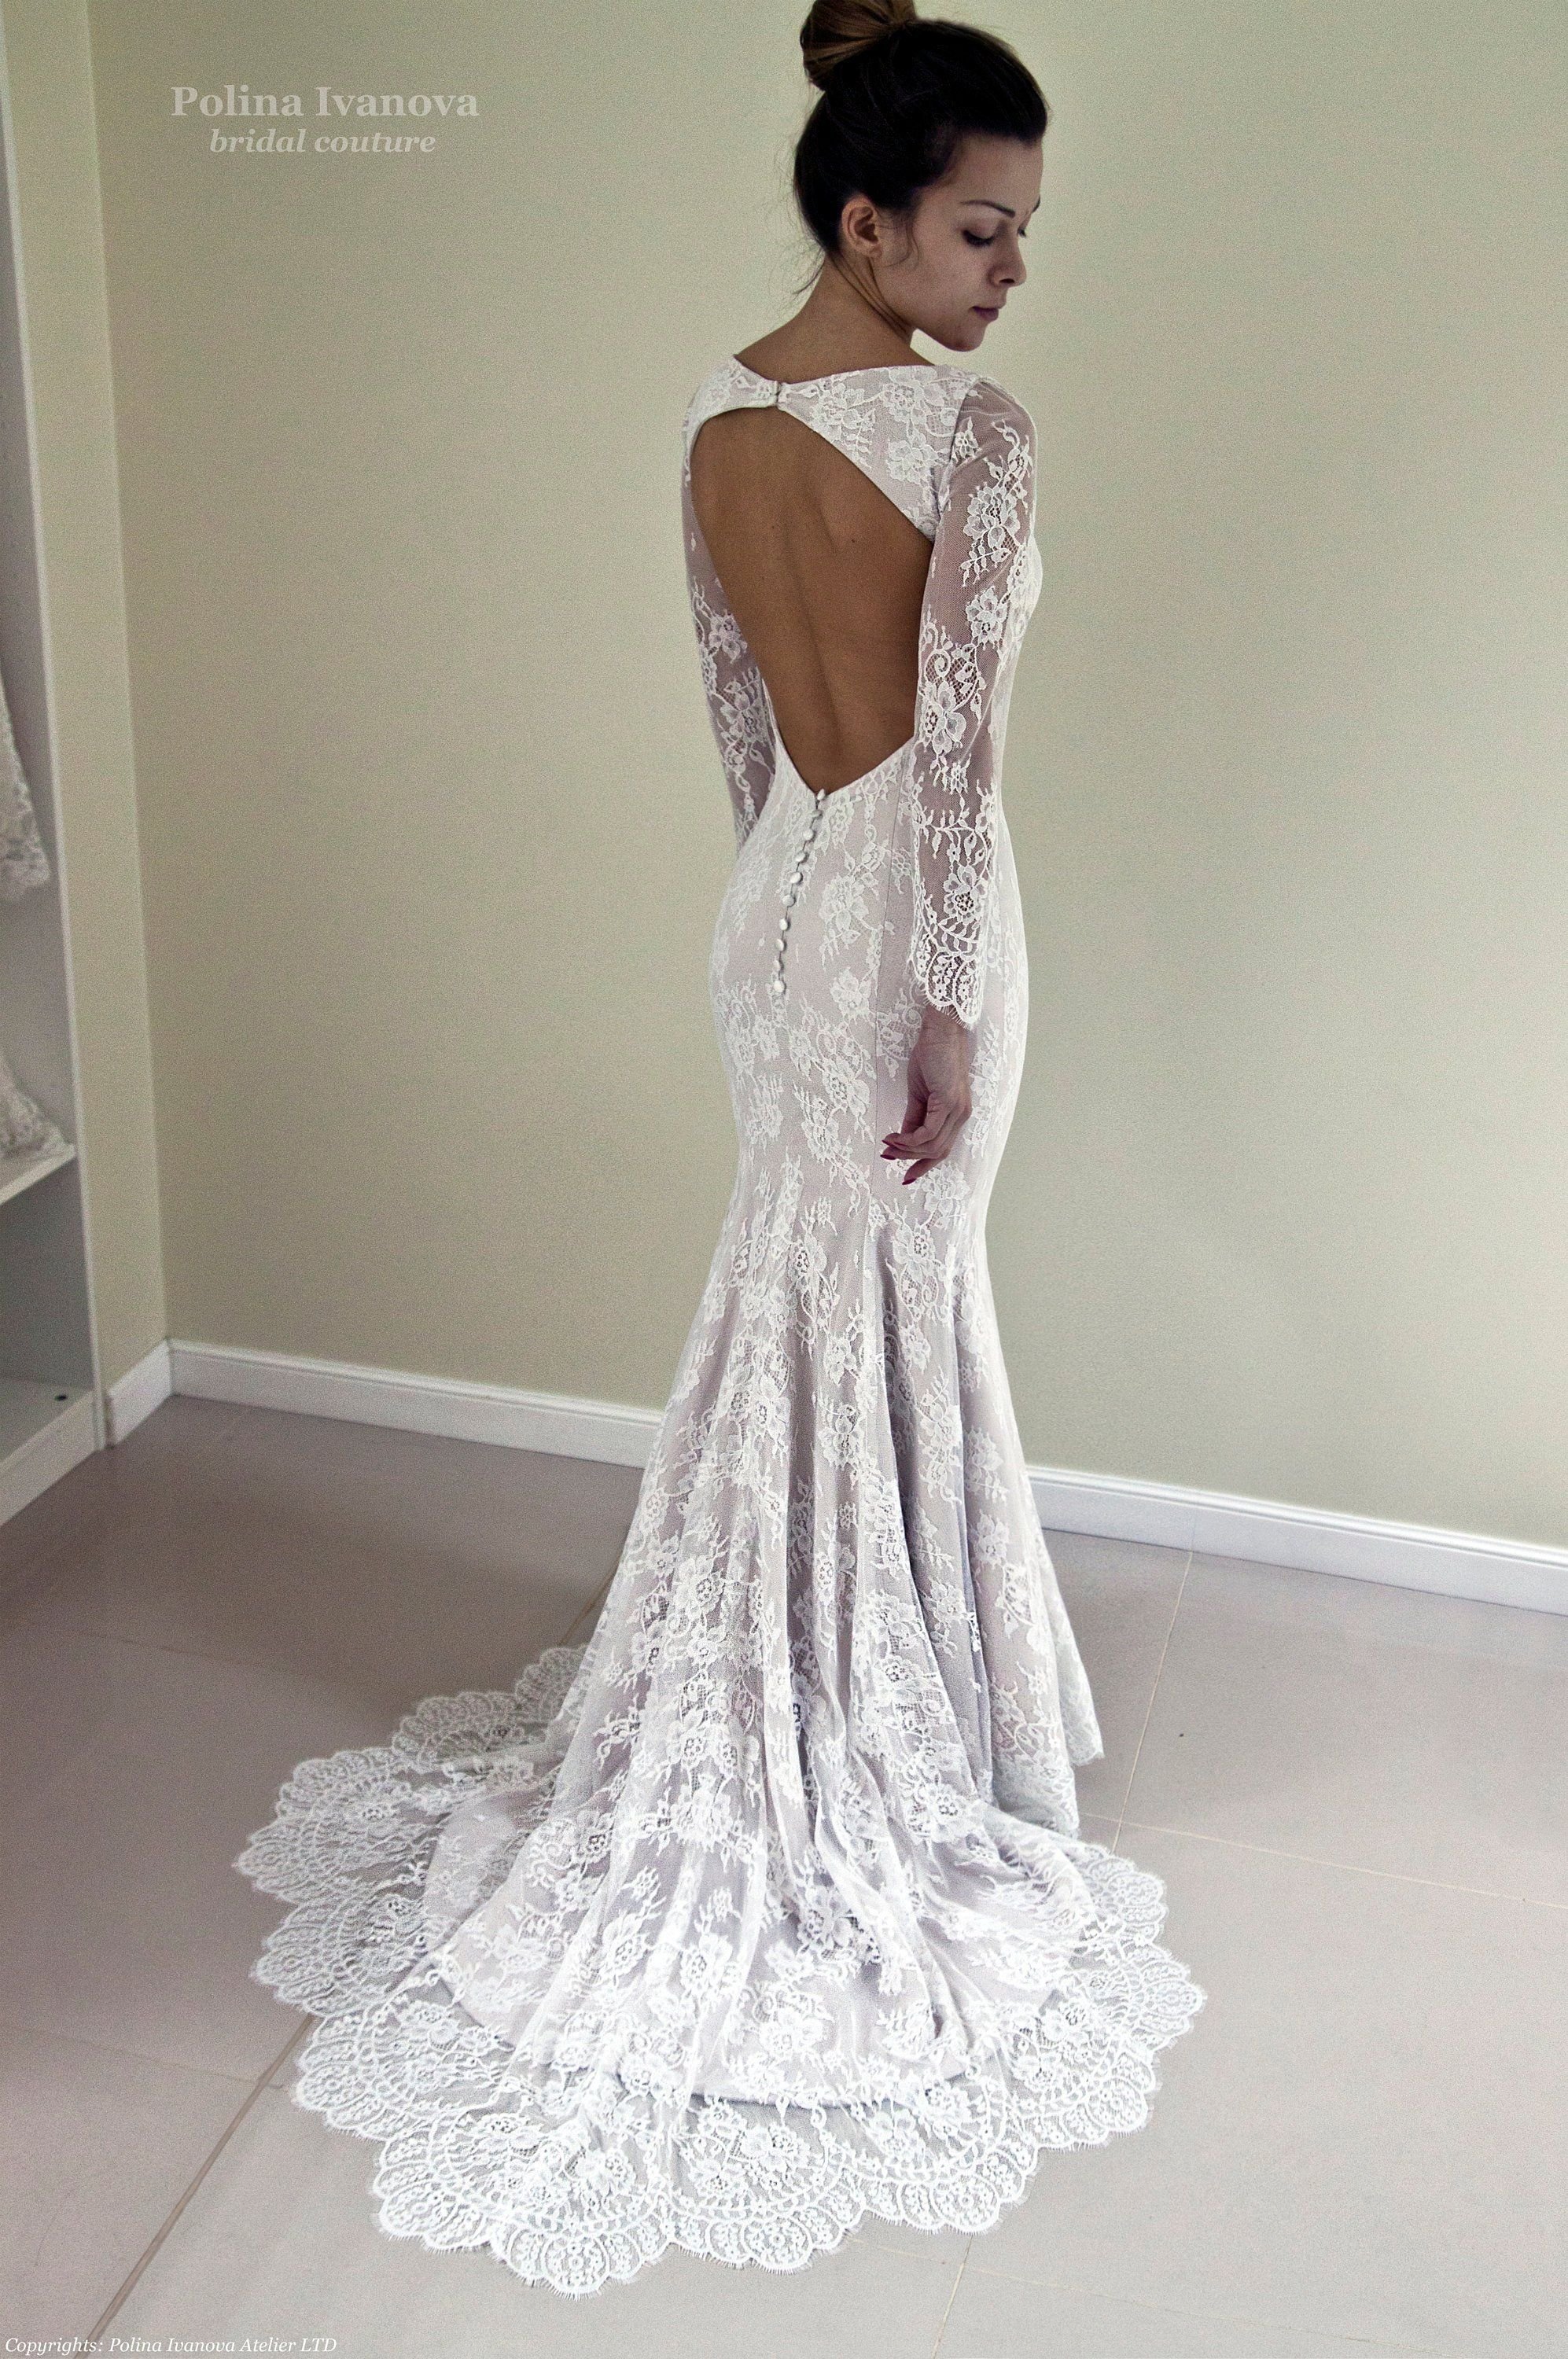 Pin on Wedding Dresses, Lace Wedding Dresses, Bridal Gowns